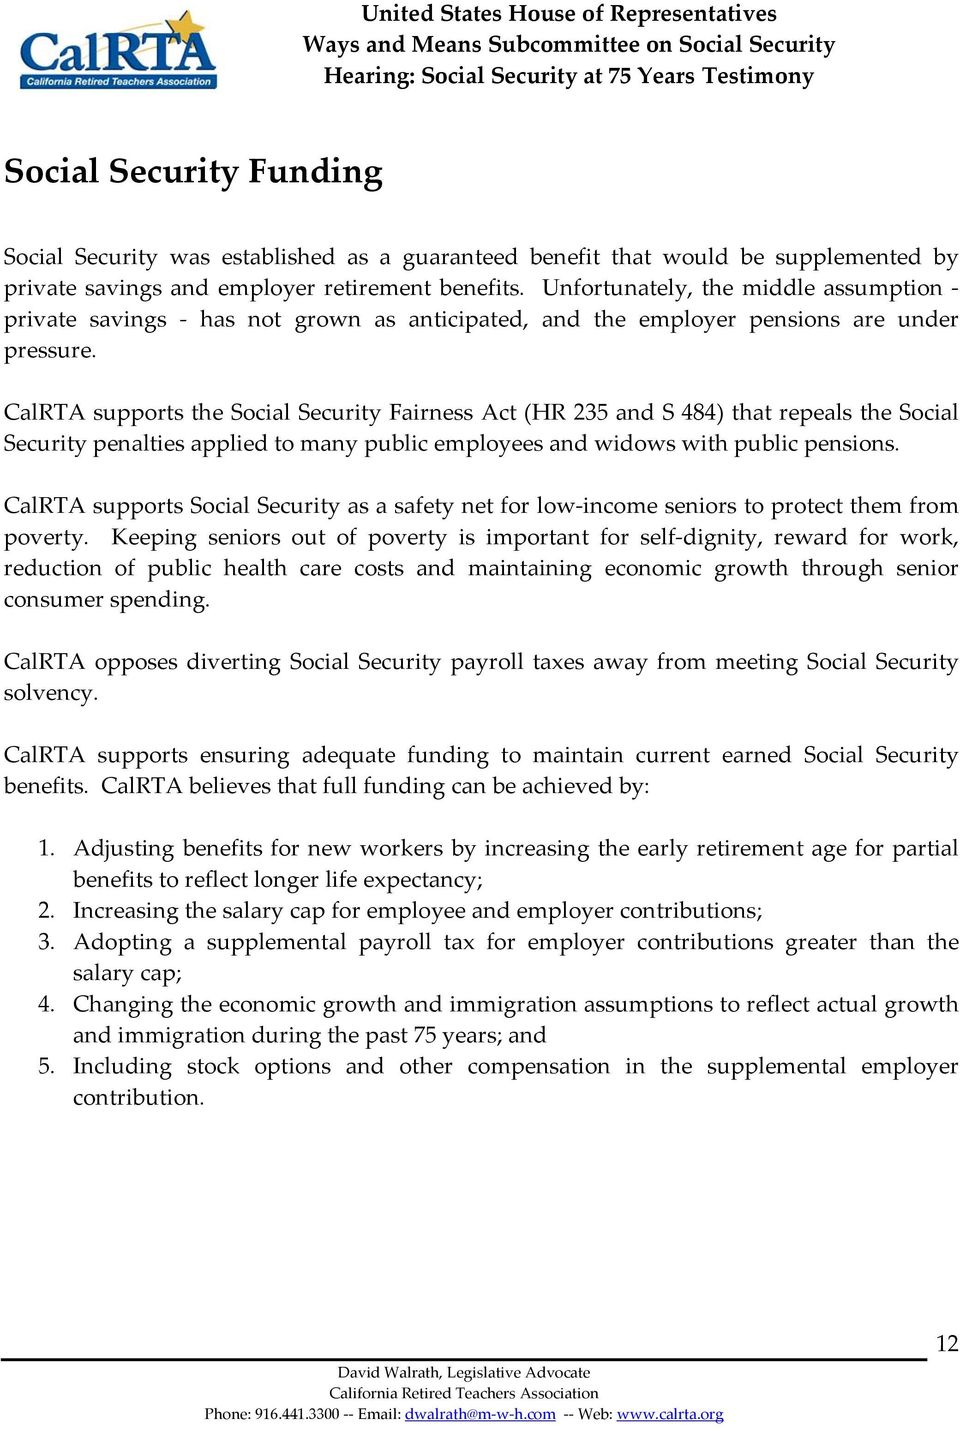 CalRTA supports the Social Security Fairness Act (HR 235 and S 484) that repeals the Social Security penalties applied to many public employees and widows with public pensions.